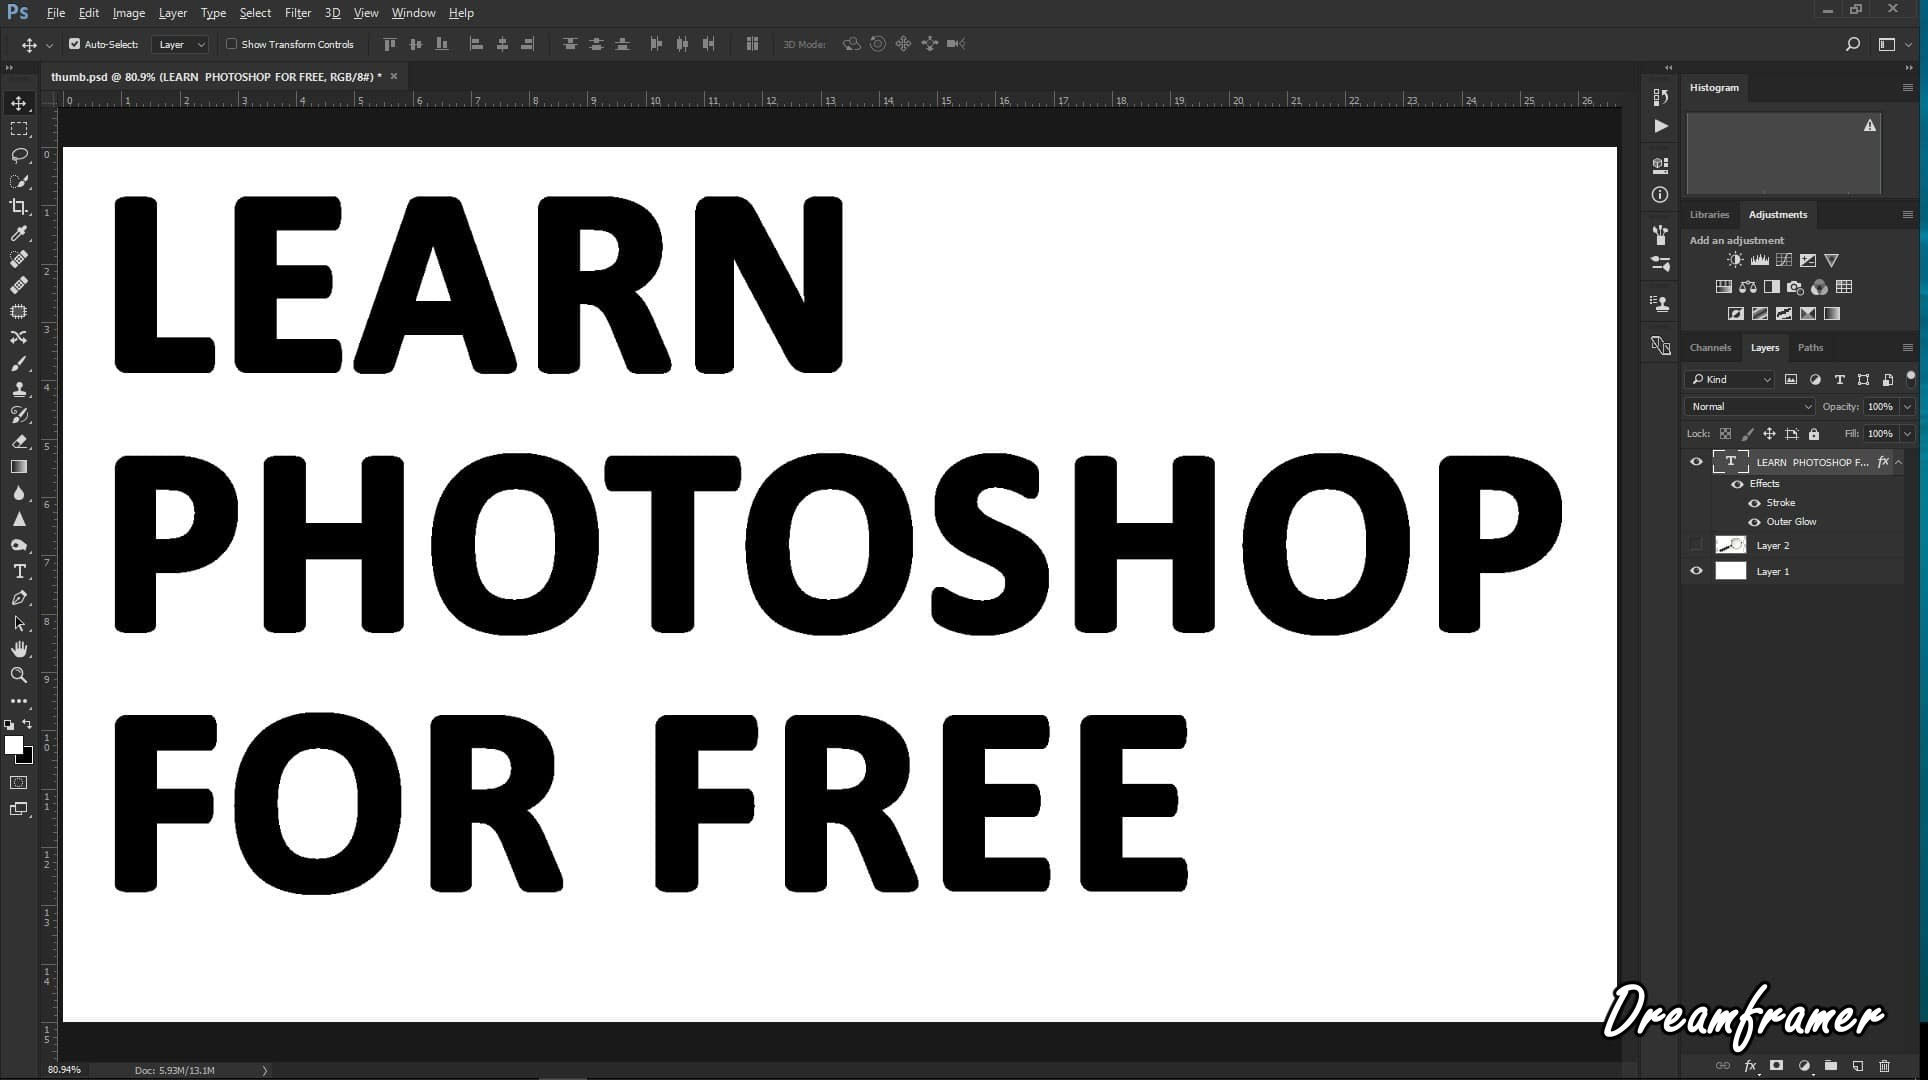 Photoshop Classes Photoshop Classes Youtube Archives Dreamframer Arts